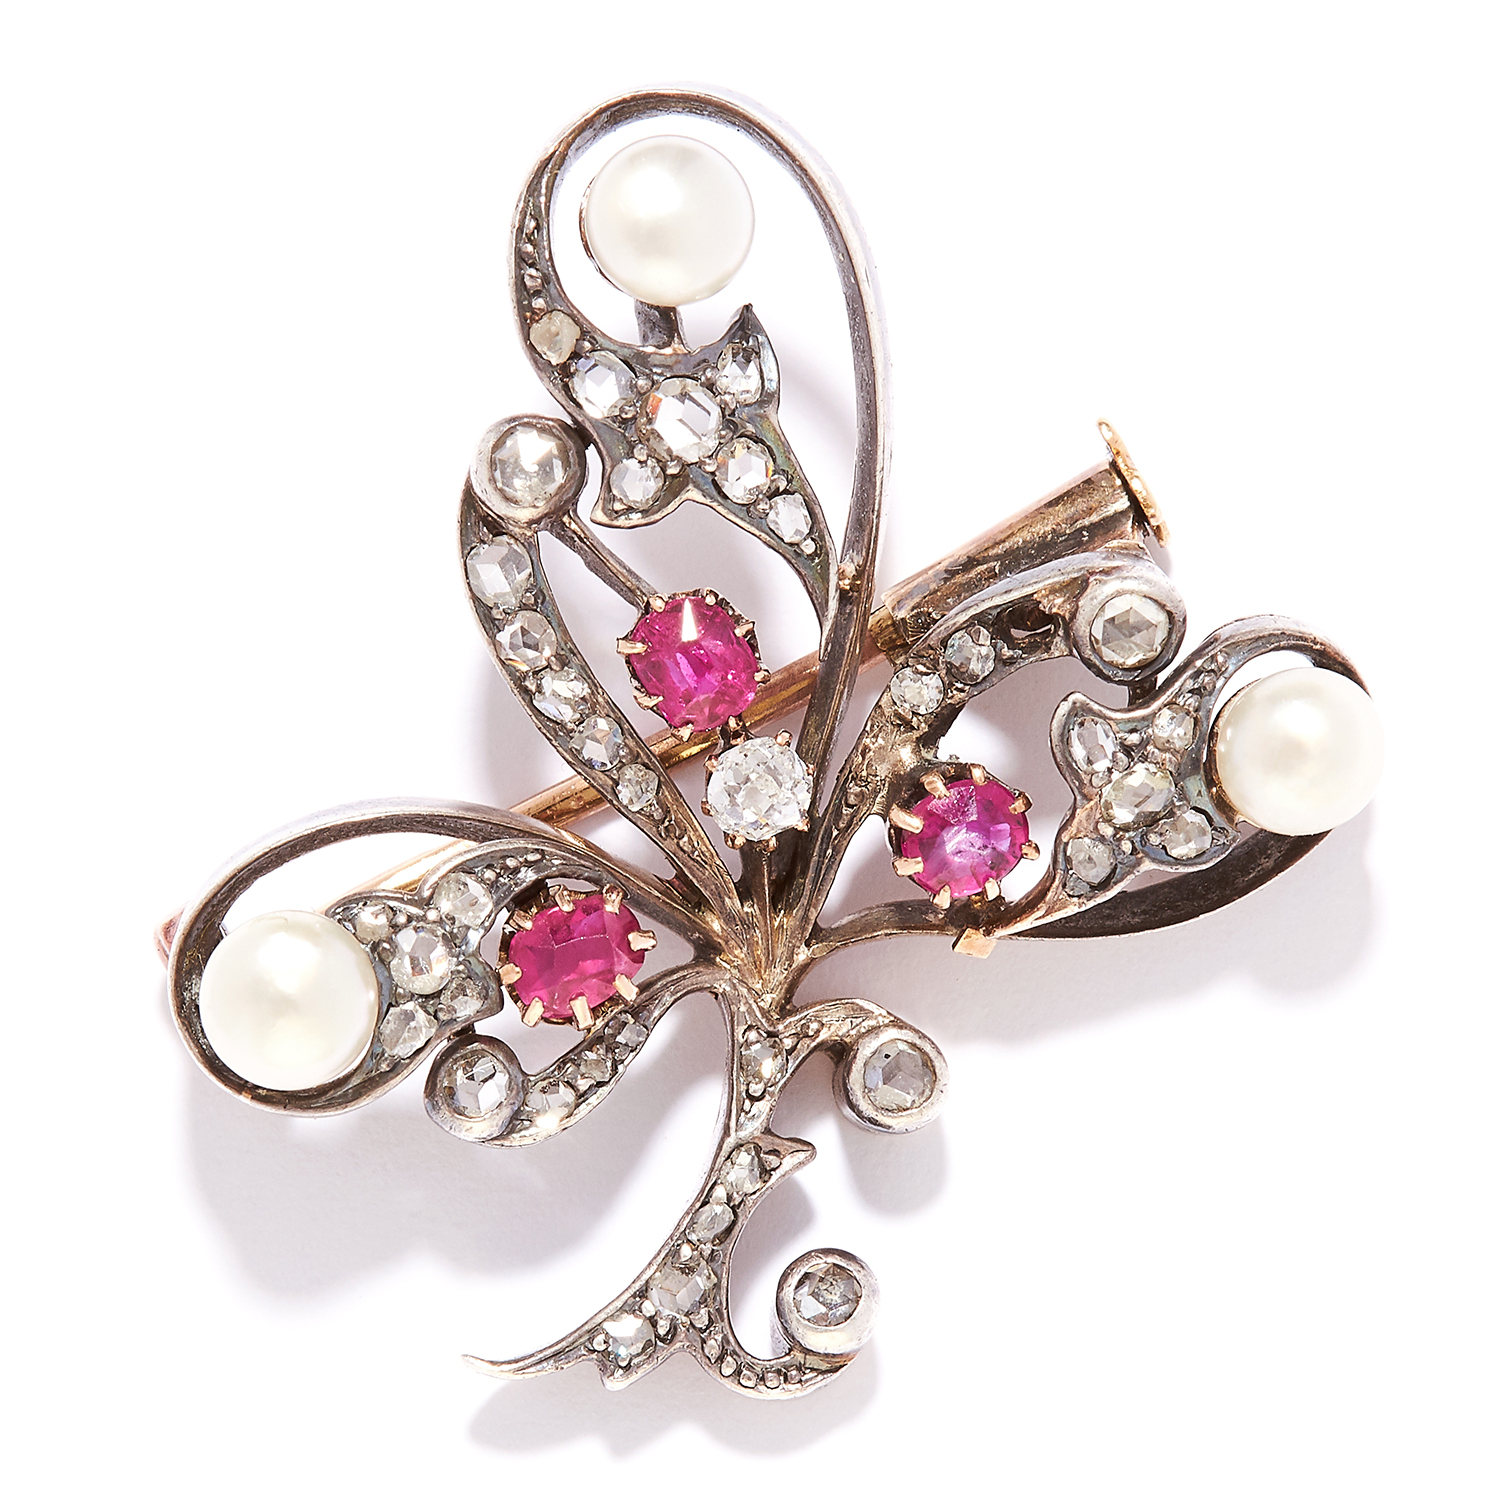 Los 42 - ANTIQUE RUBY, PEARL AND DIAMOND BROOCH, ASPREY in yellow gold, in clover motif, set with rose cut